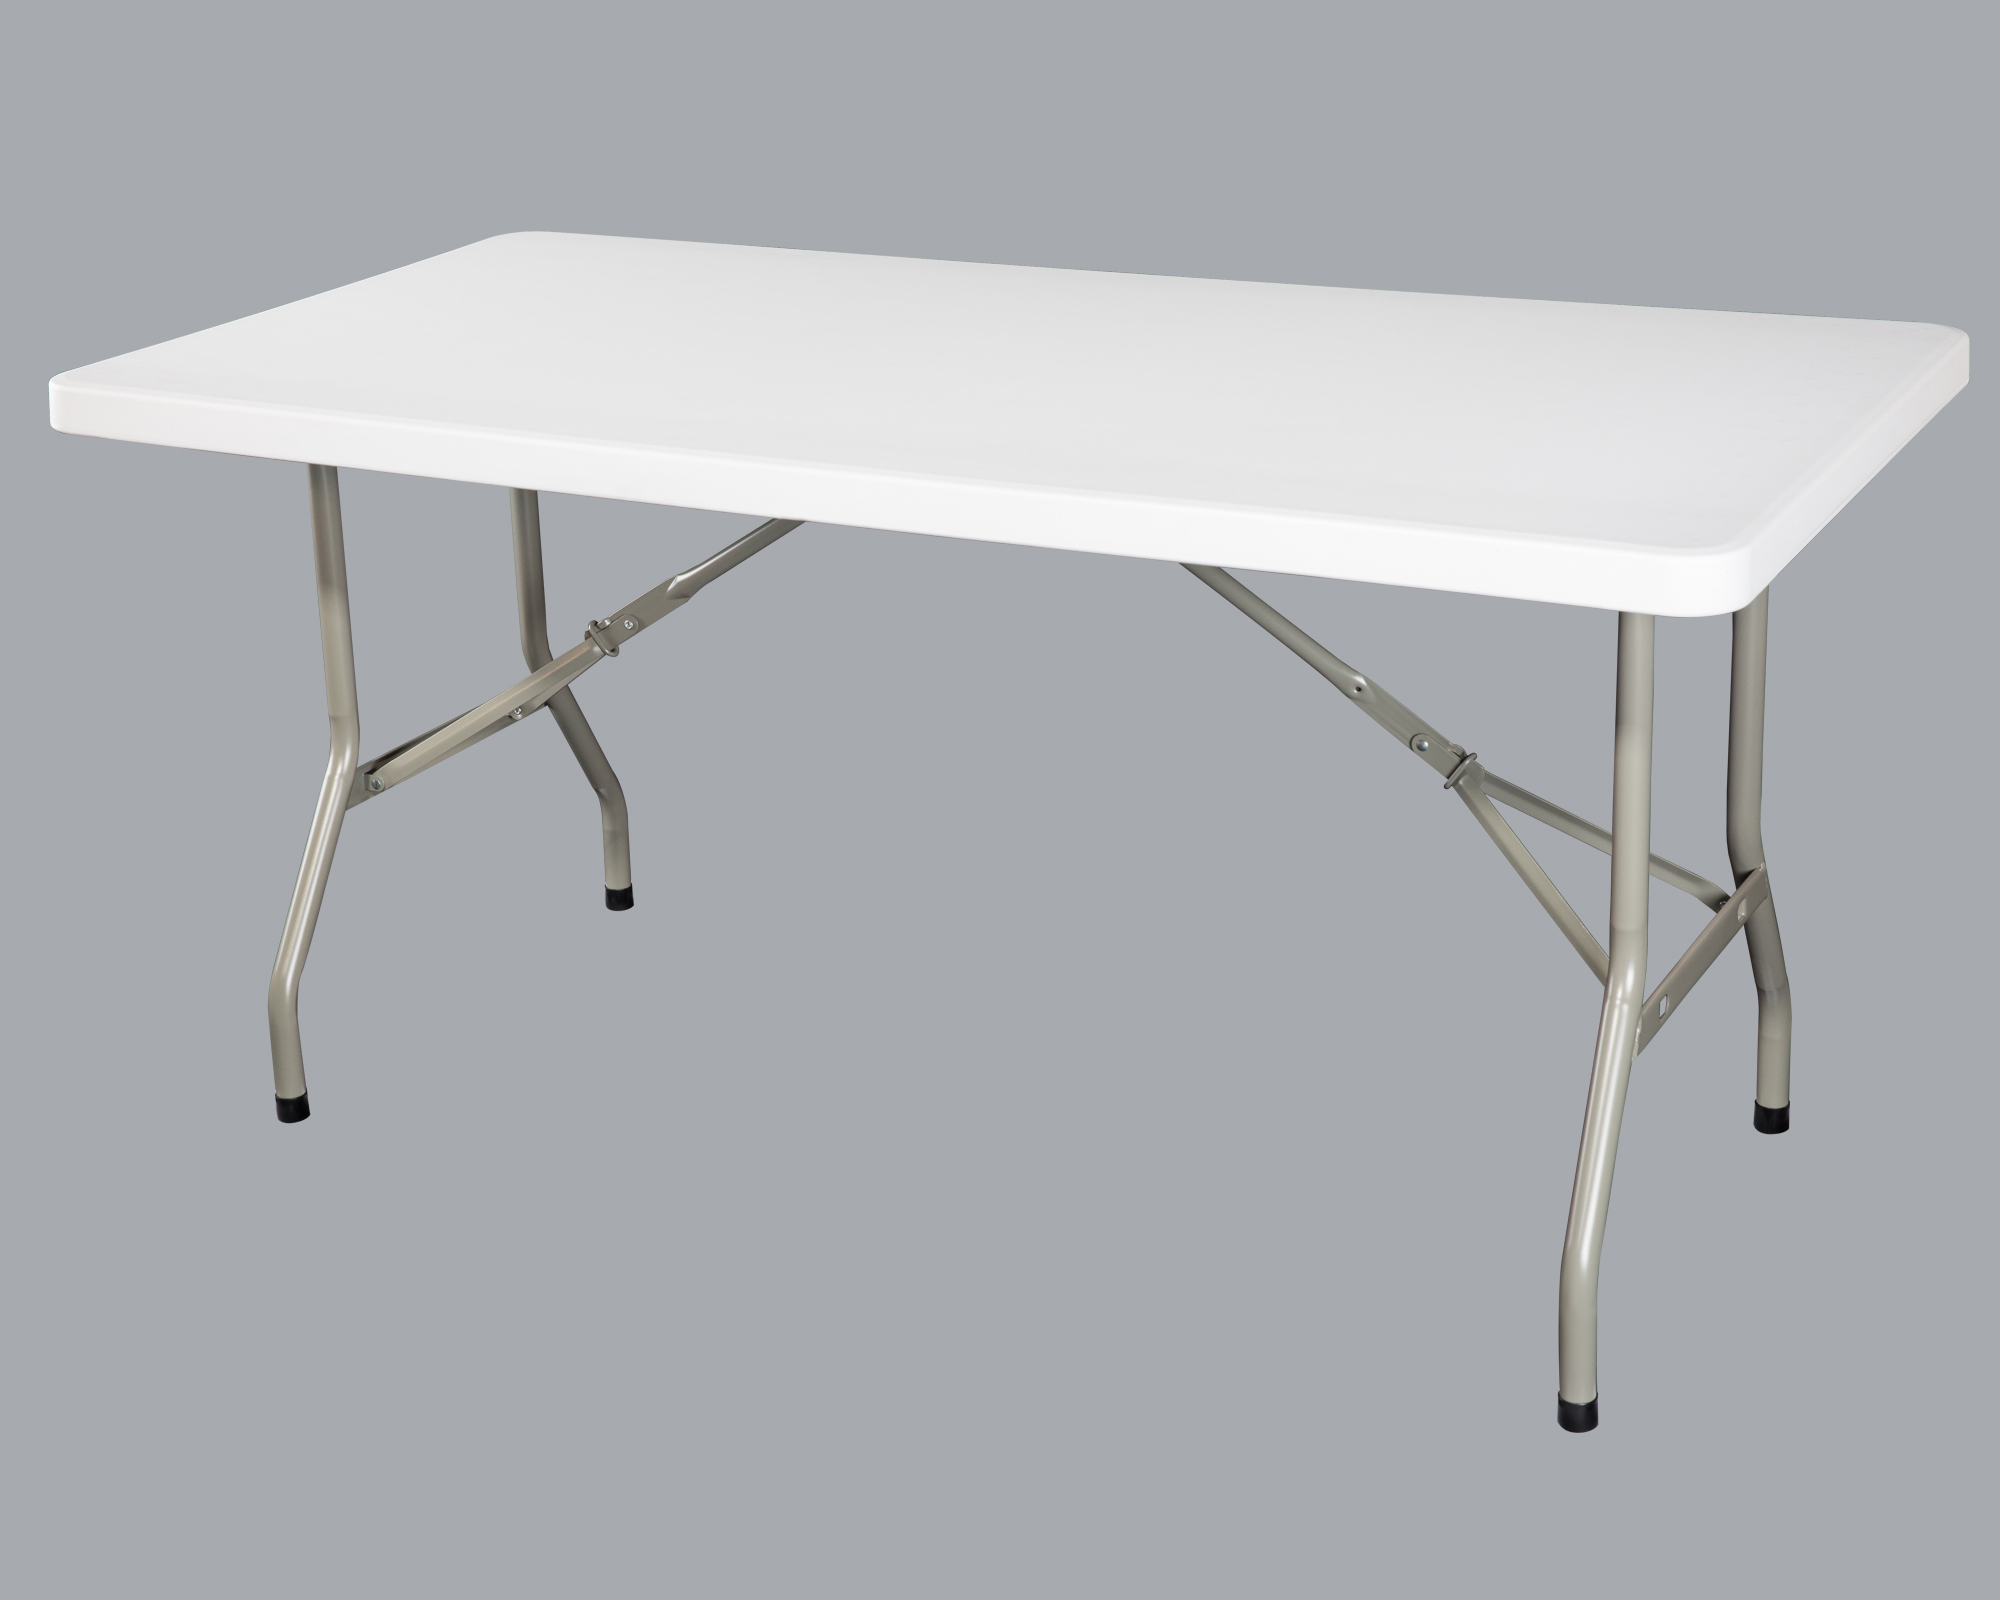 Retangular 5FT Folding Table